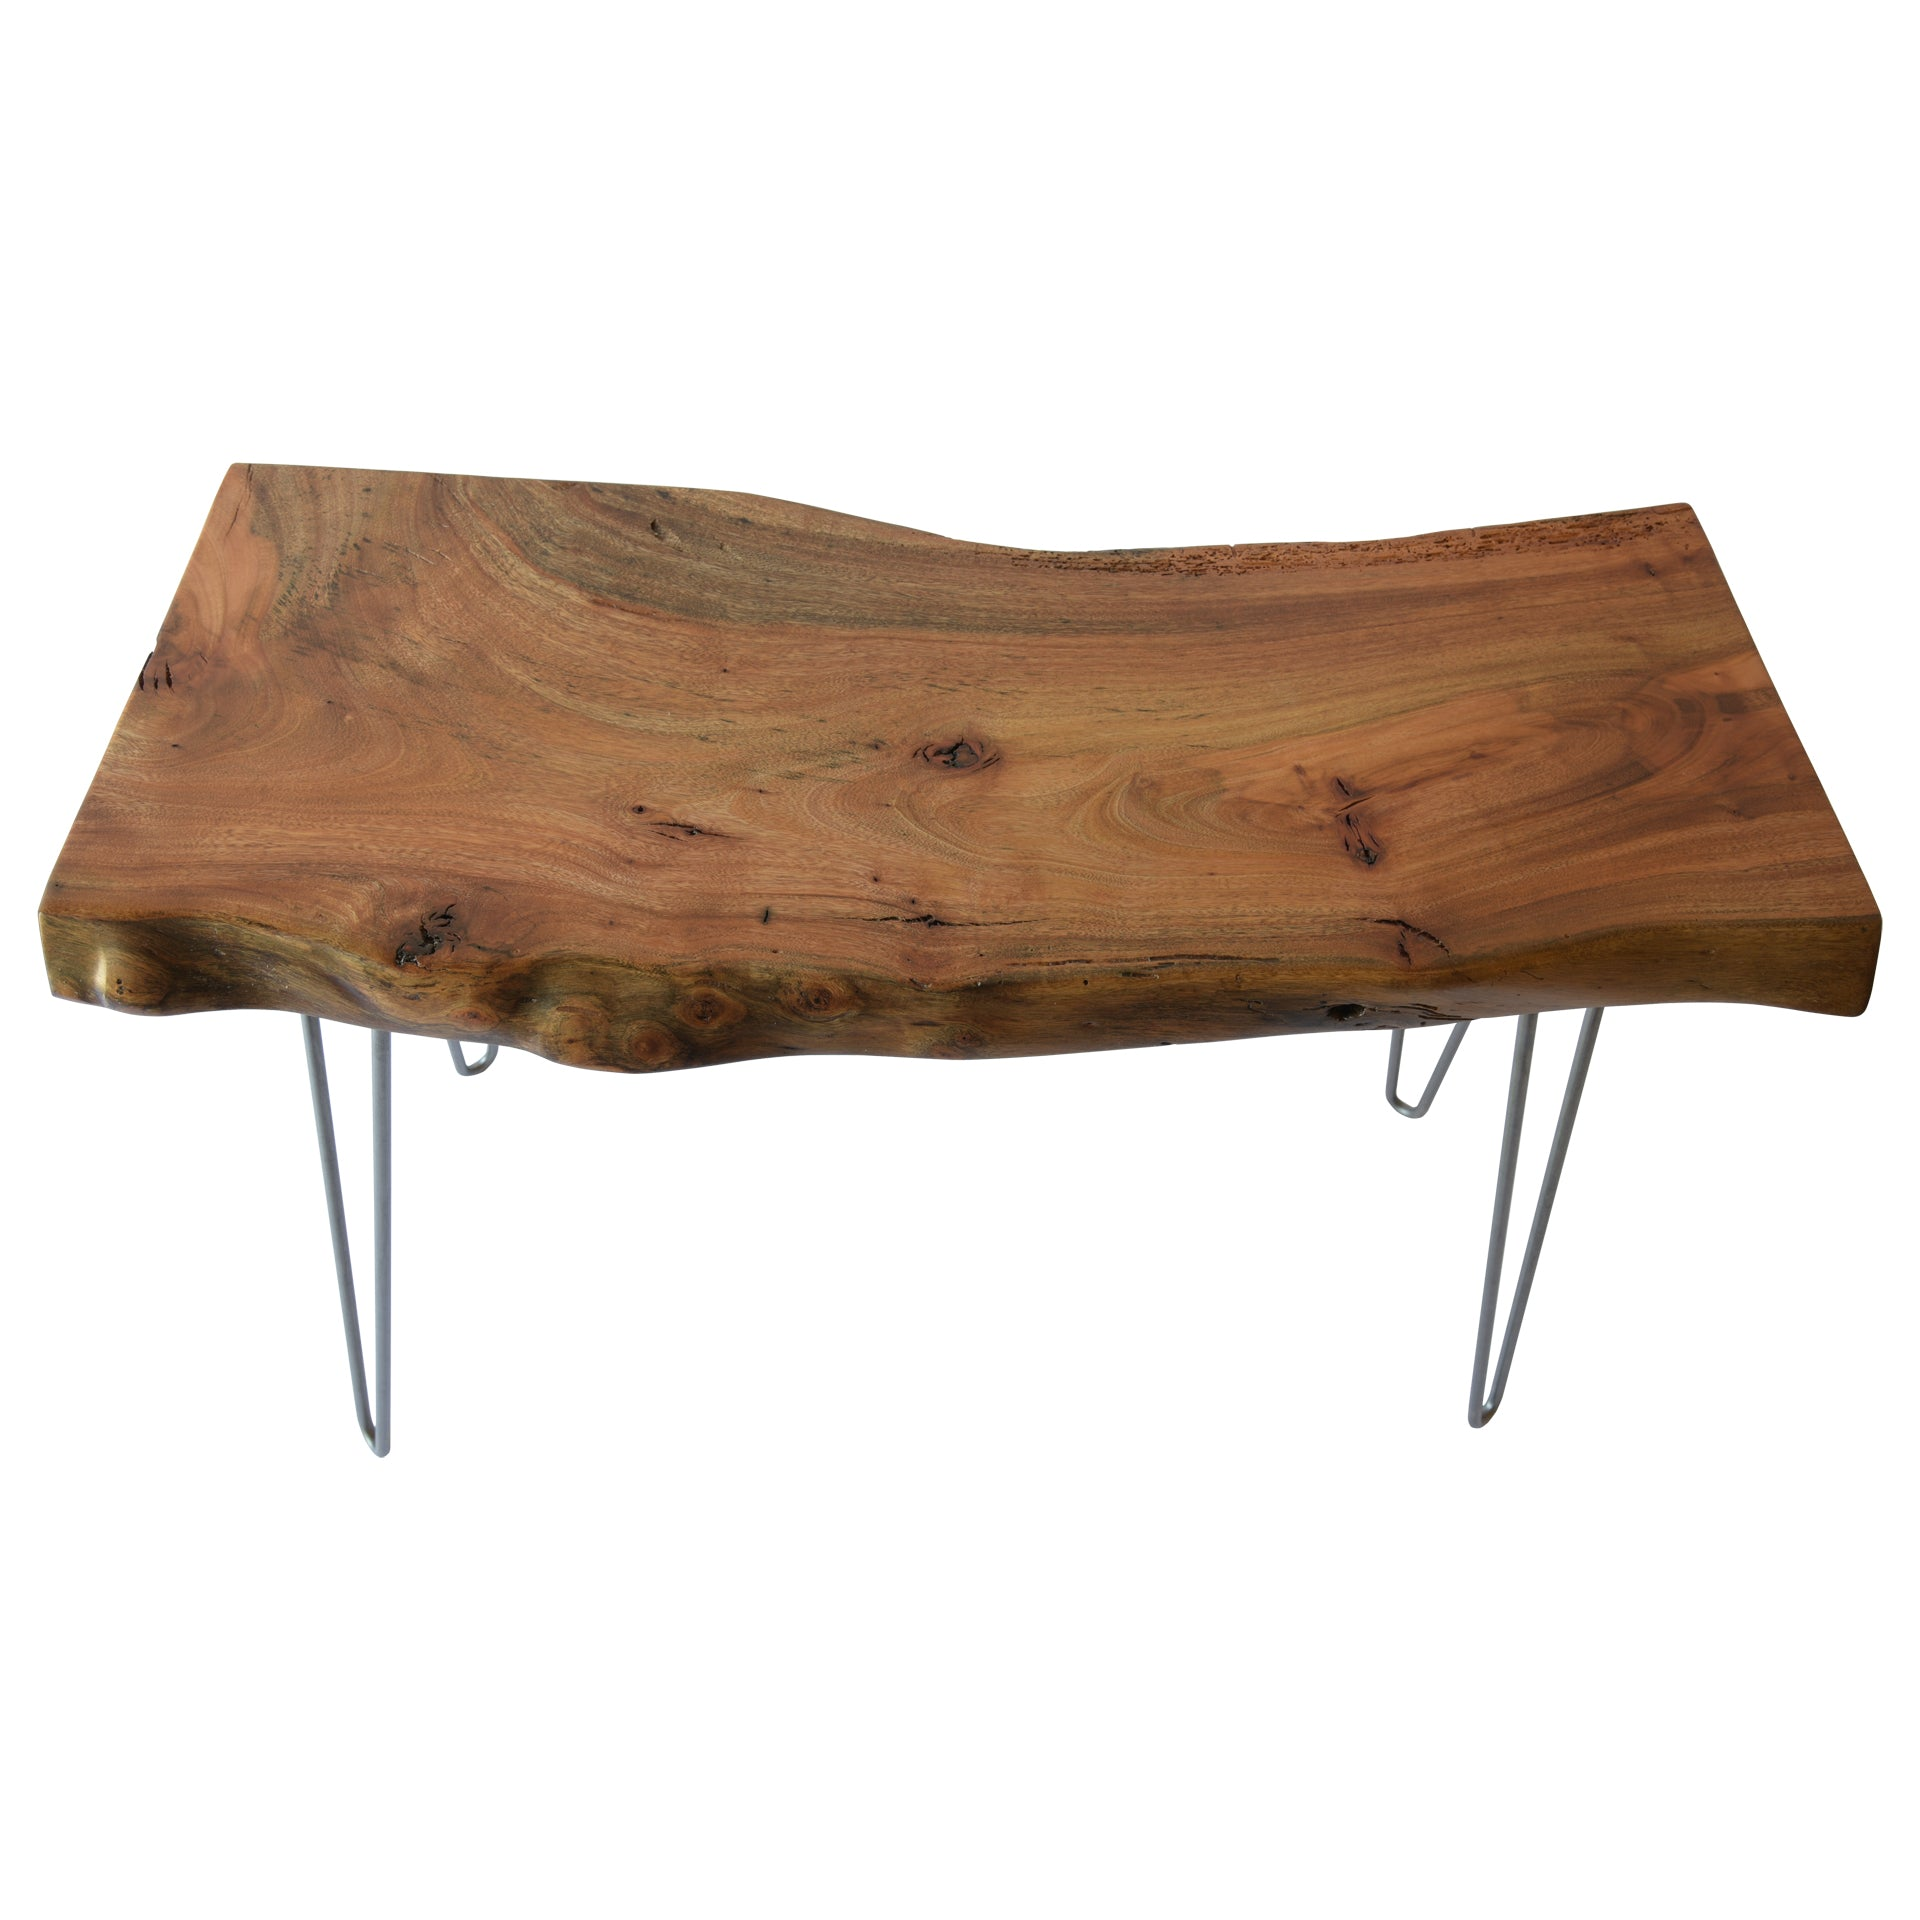 Light Live Edge Slab Reclaimed End Table